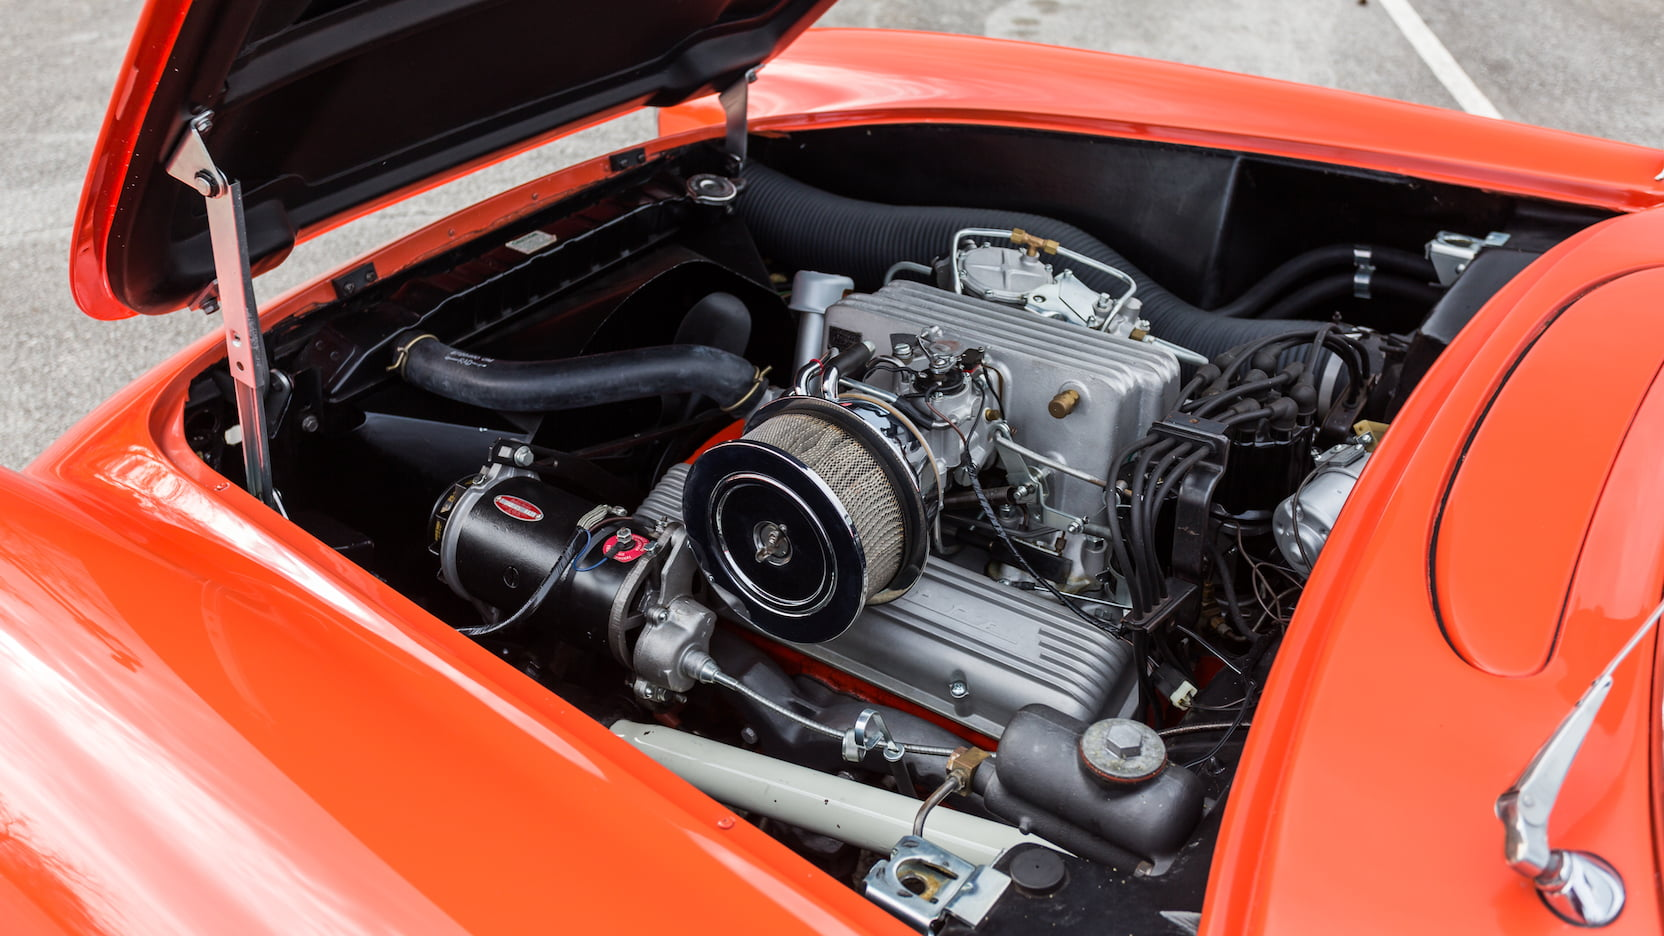 1957 Chevrolet Corvette with fuel-injected 283 small block